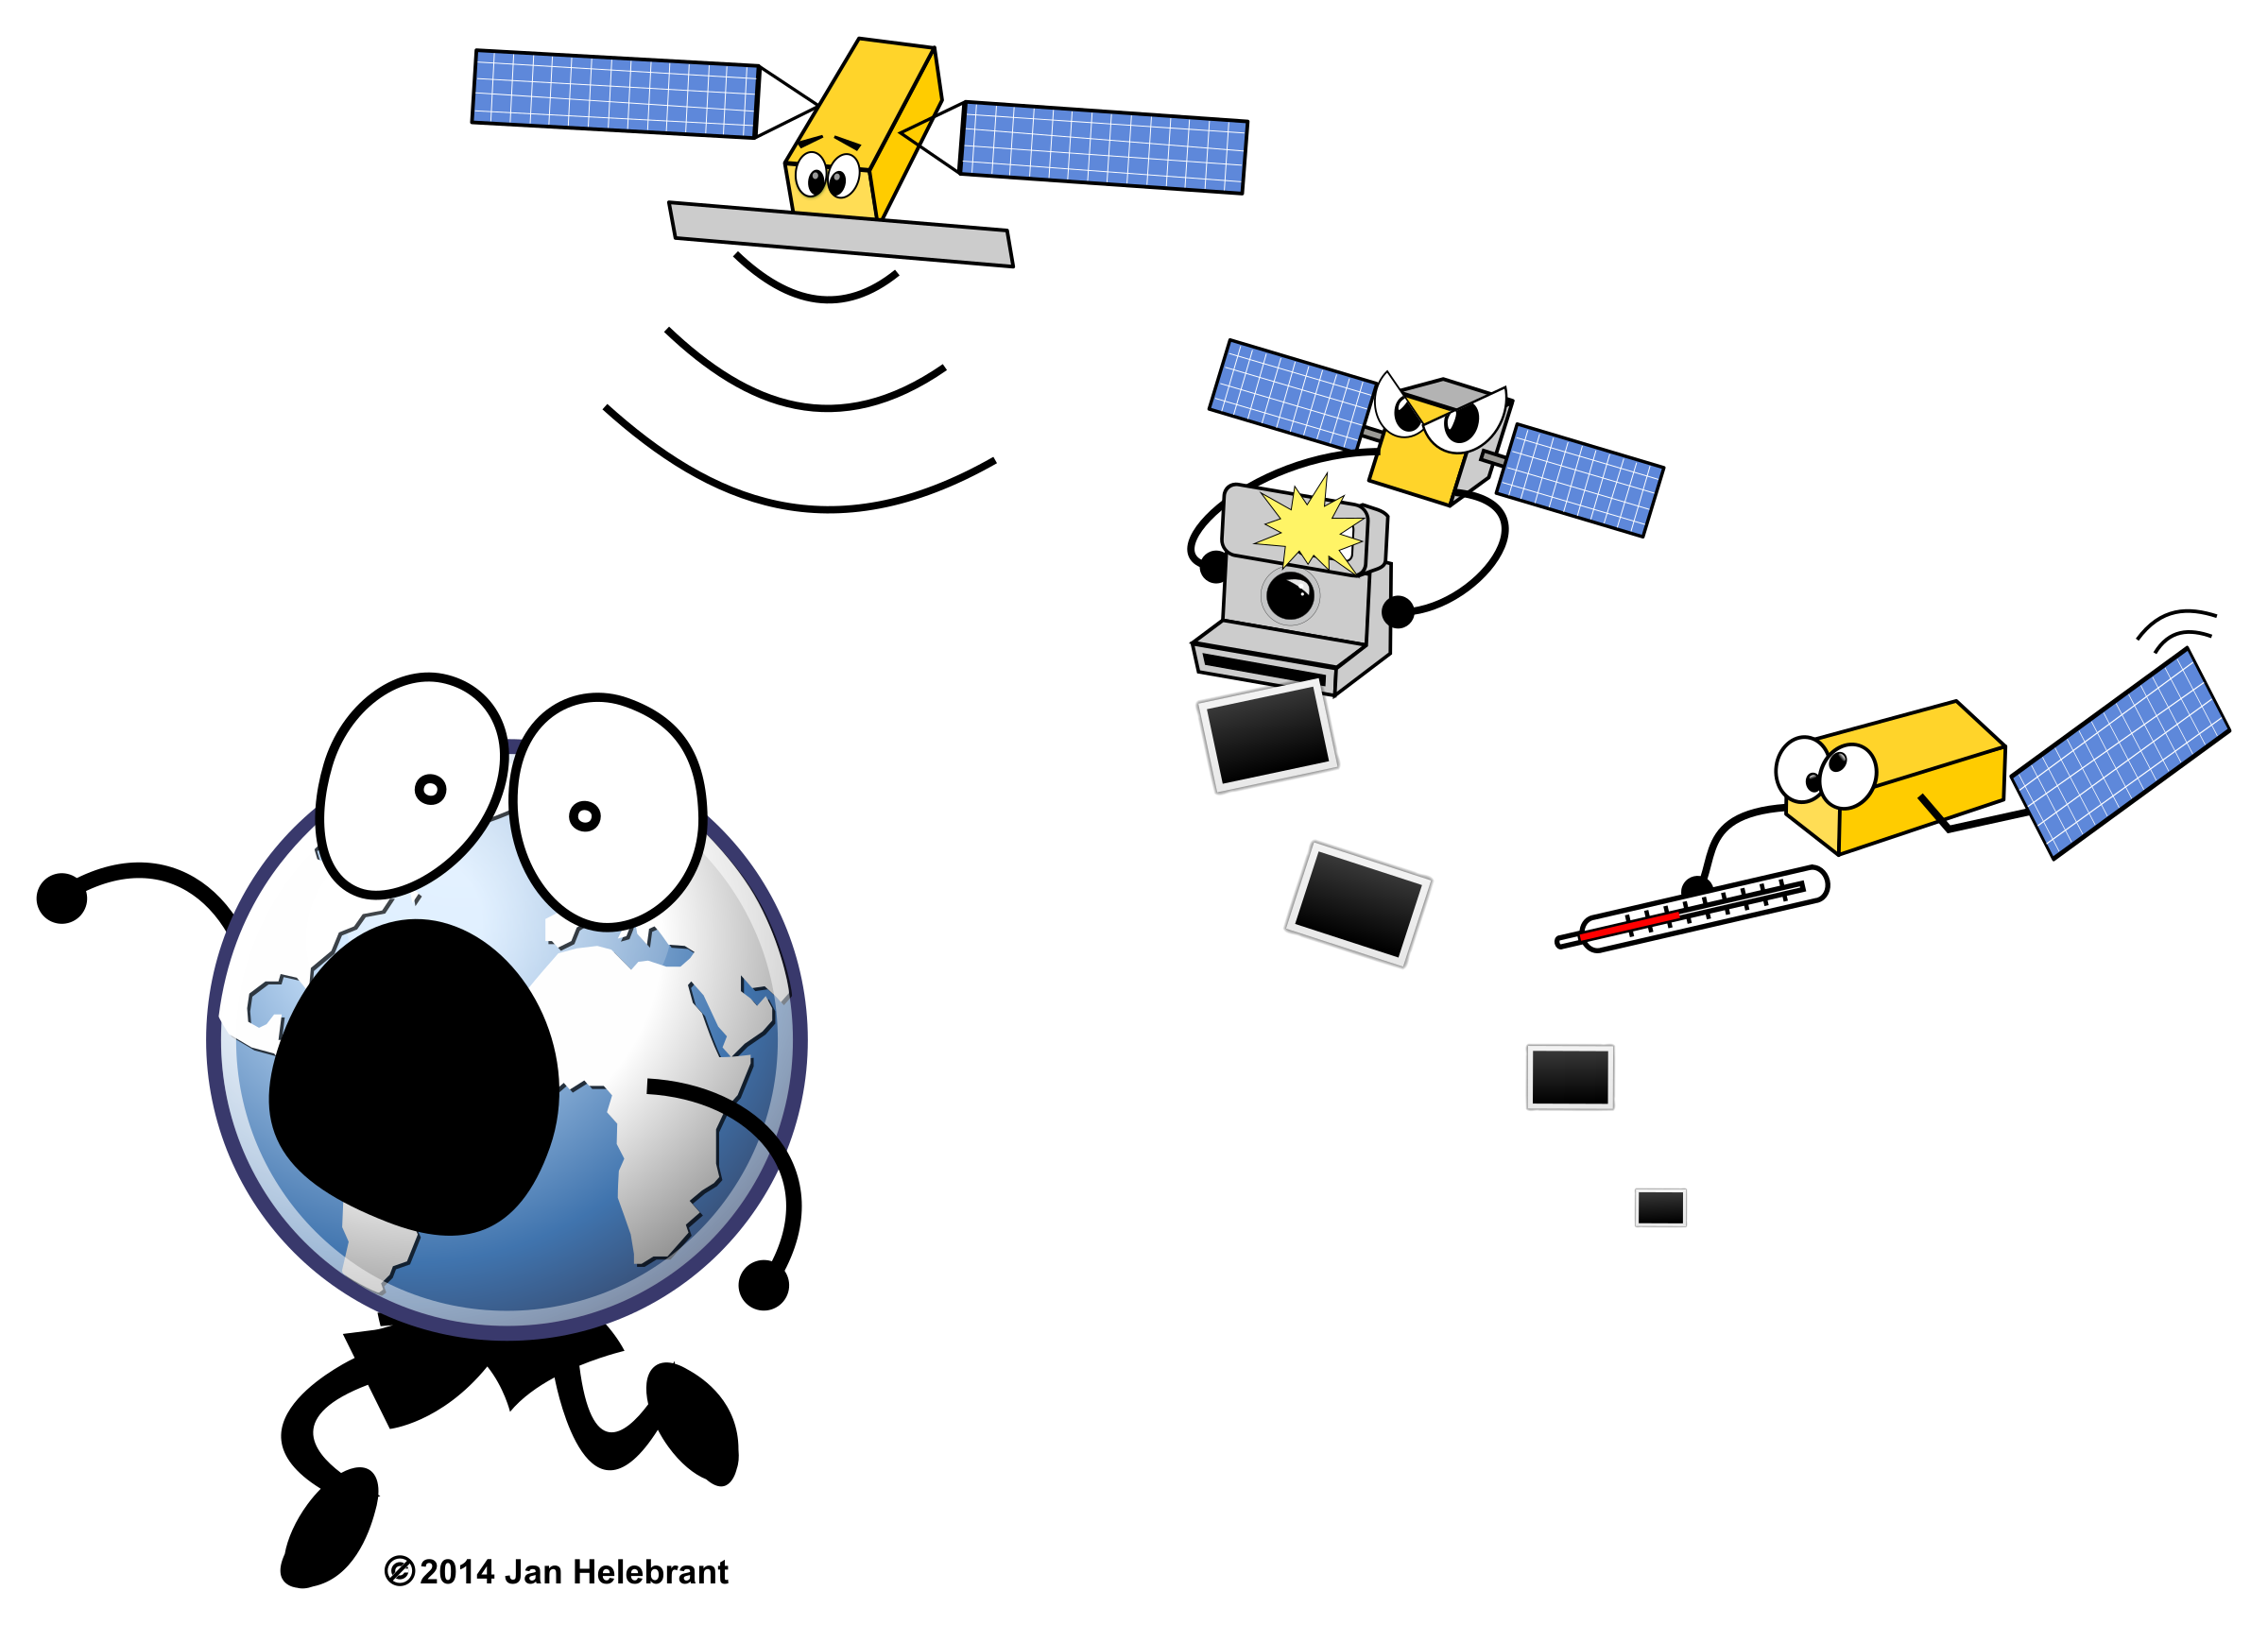 Cartoon Sentinel satellites / parody by Juhele